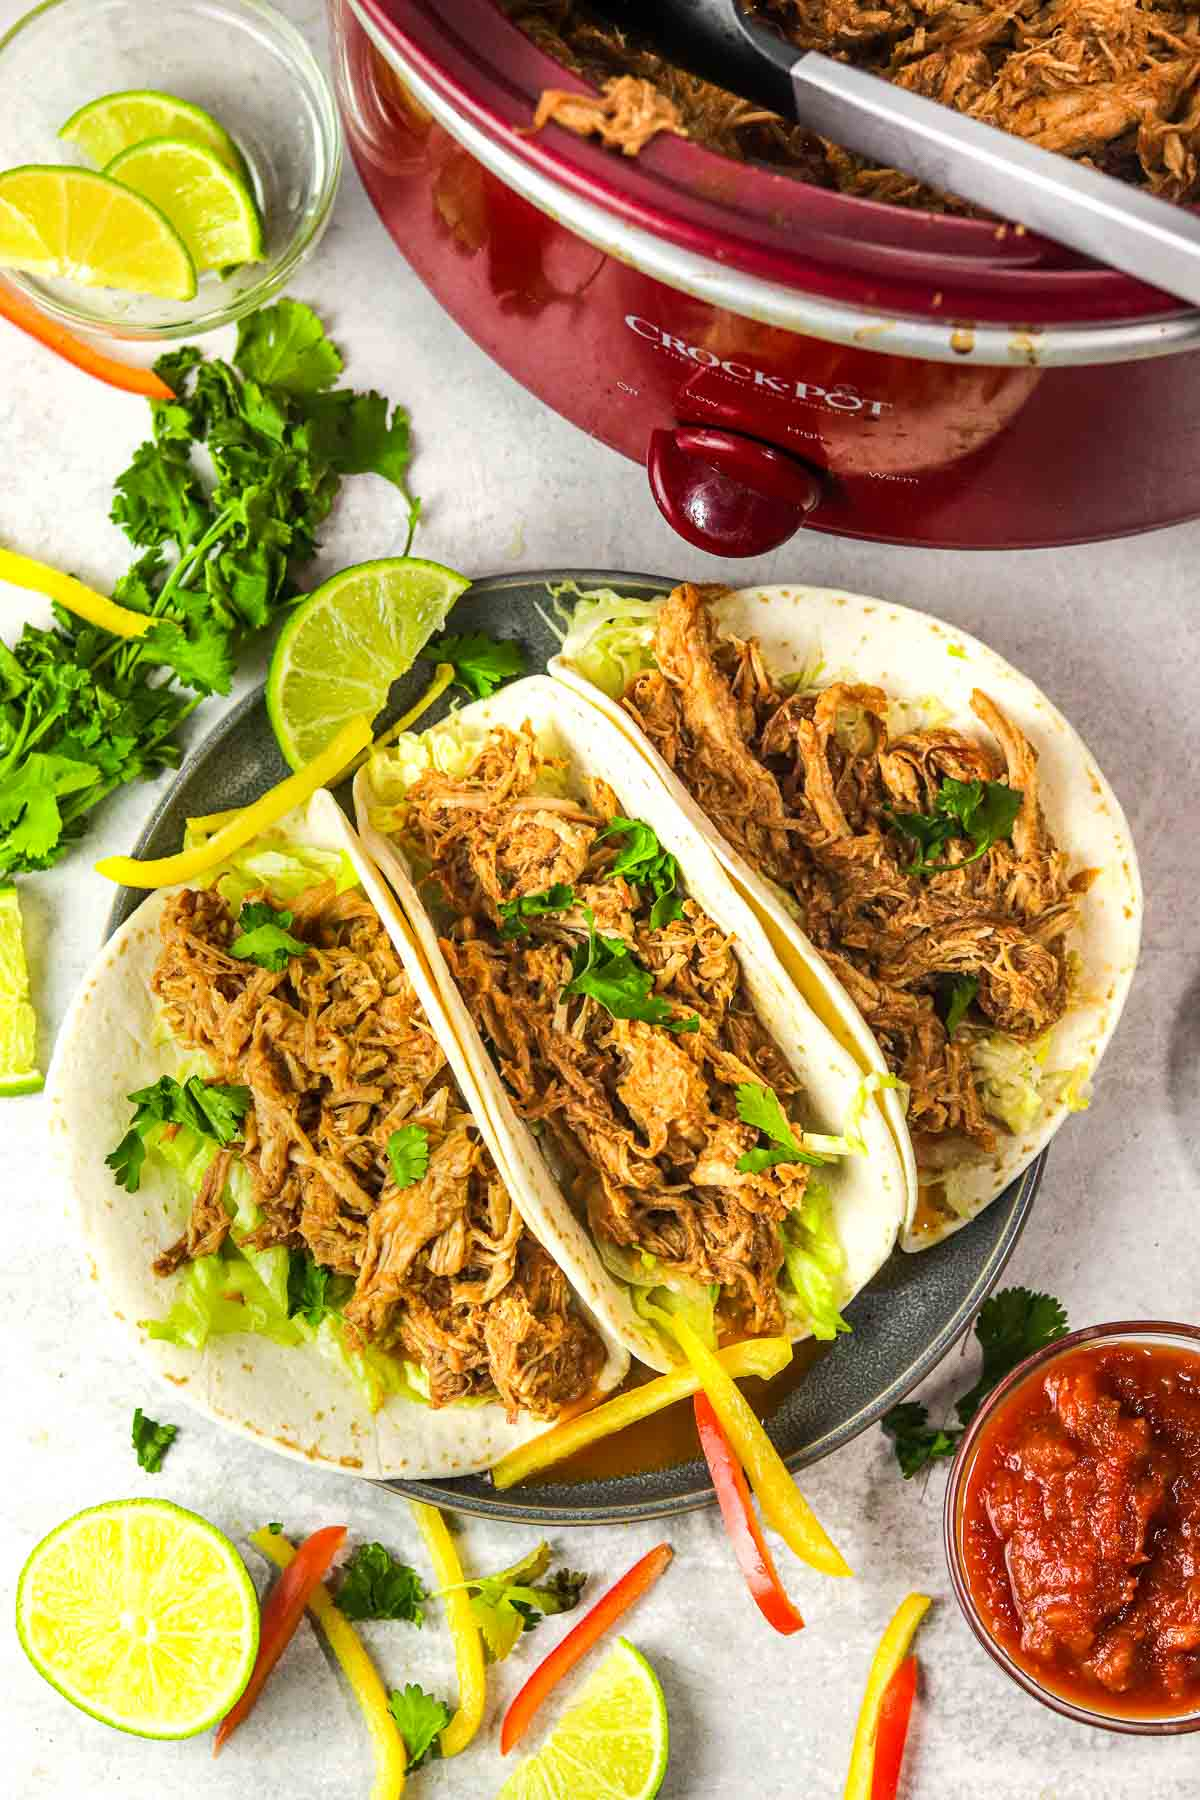 Plate of slow cooker pork barbacoa with cilantro, lime and peppers.